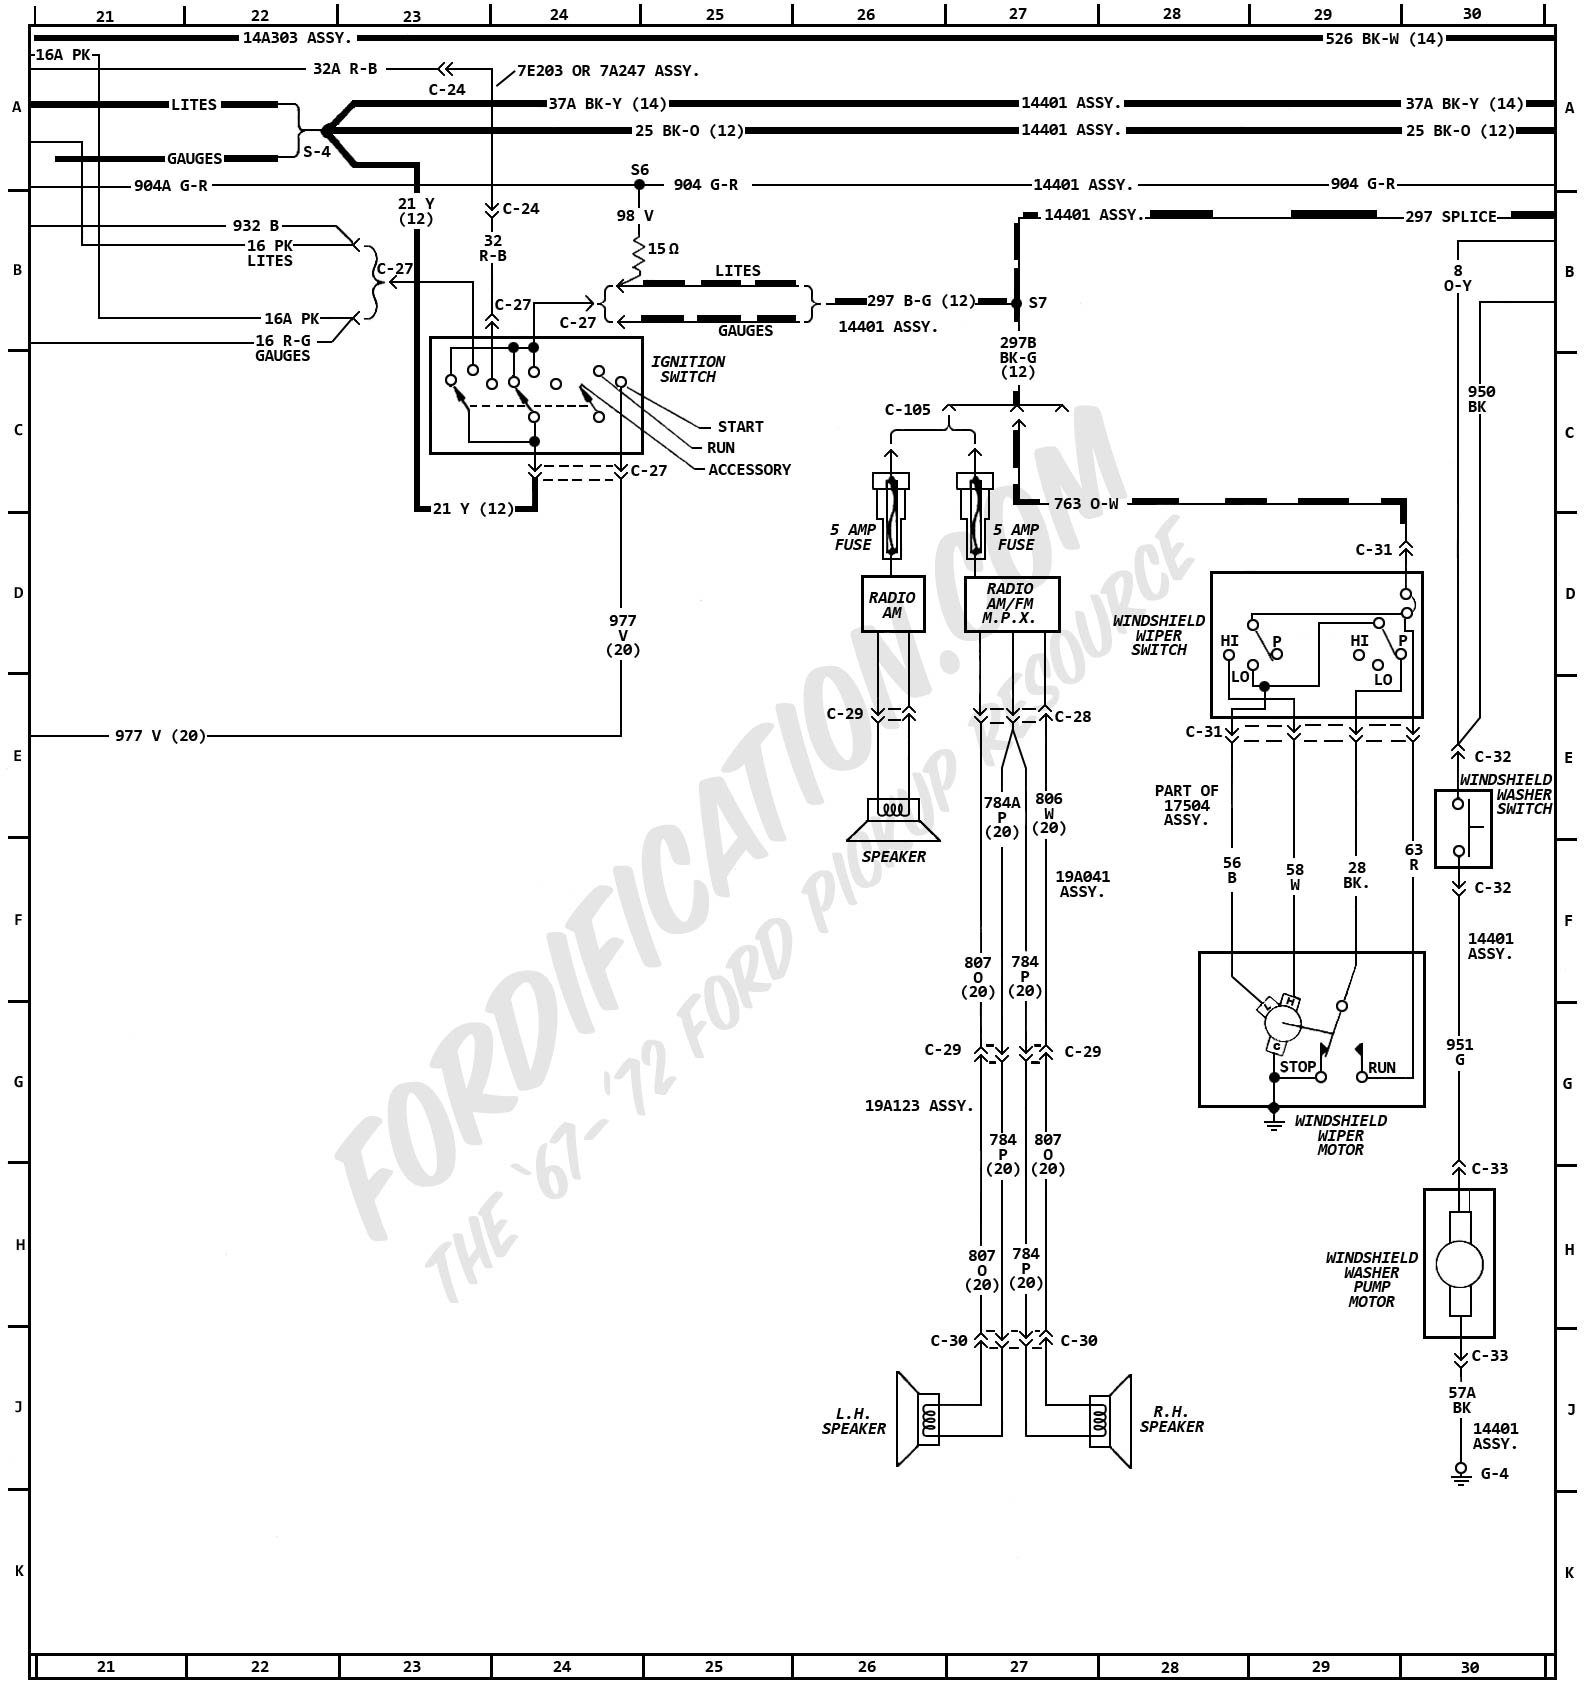 1974 Ford Ltd Alternator Wiring Diagram Libraries On For 1977 Chevy Truck F100 Diagrams Schema1972 Img